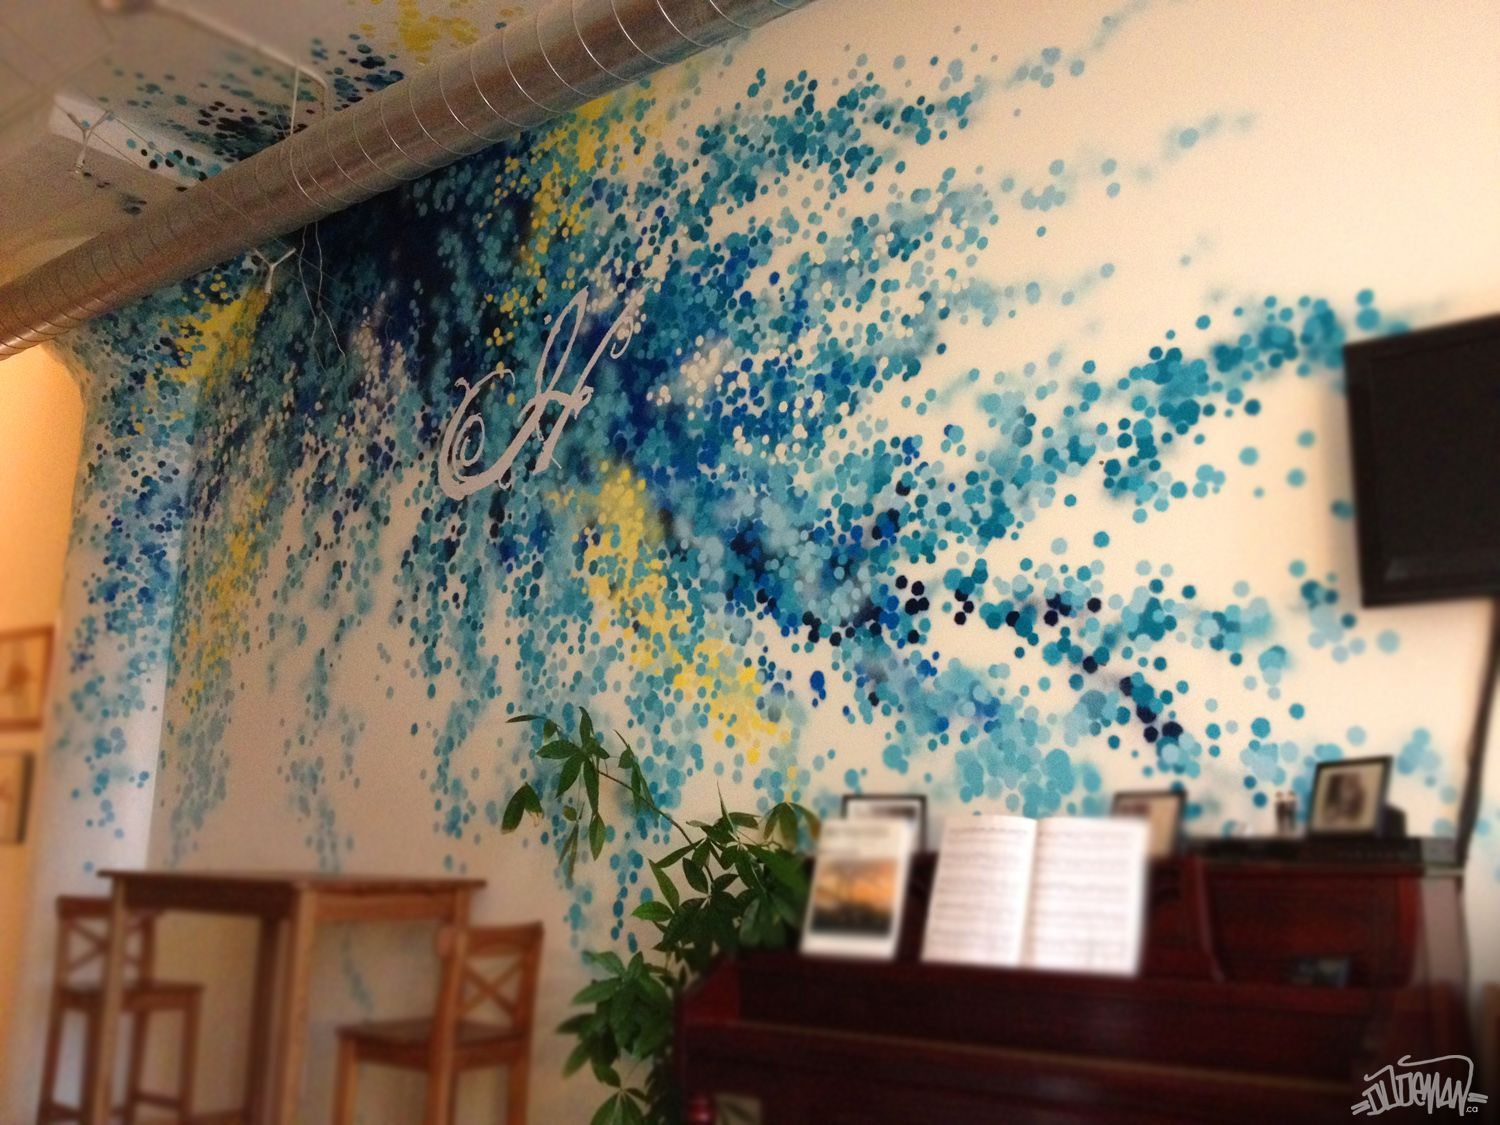 Images Of Painted Walls With Spray Bottle Dudeman S Blog Follow